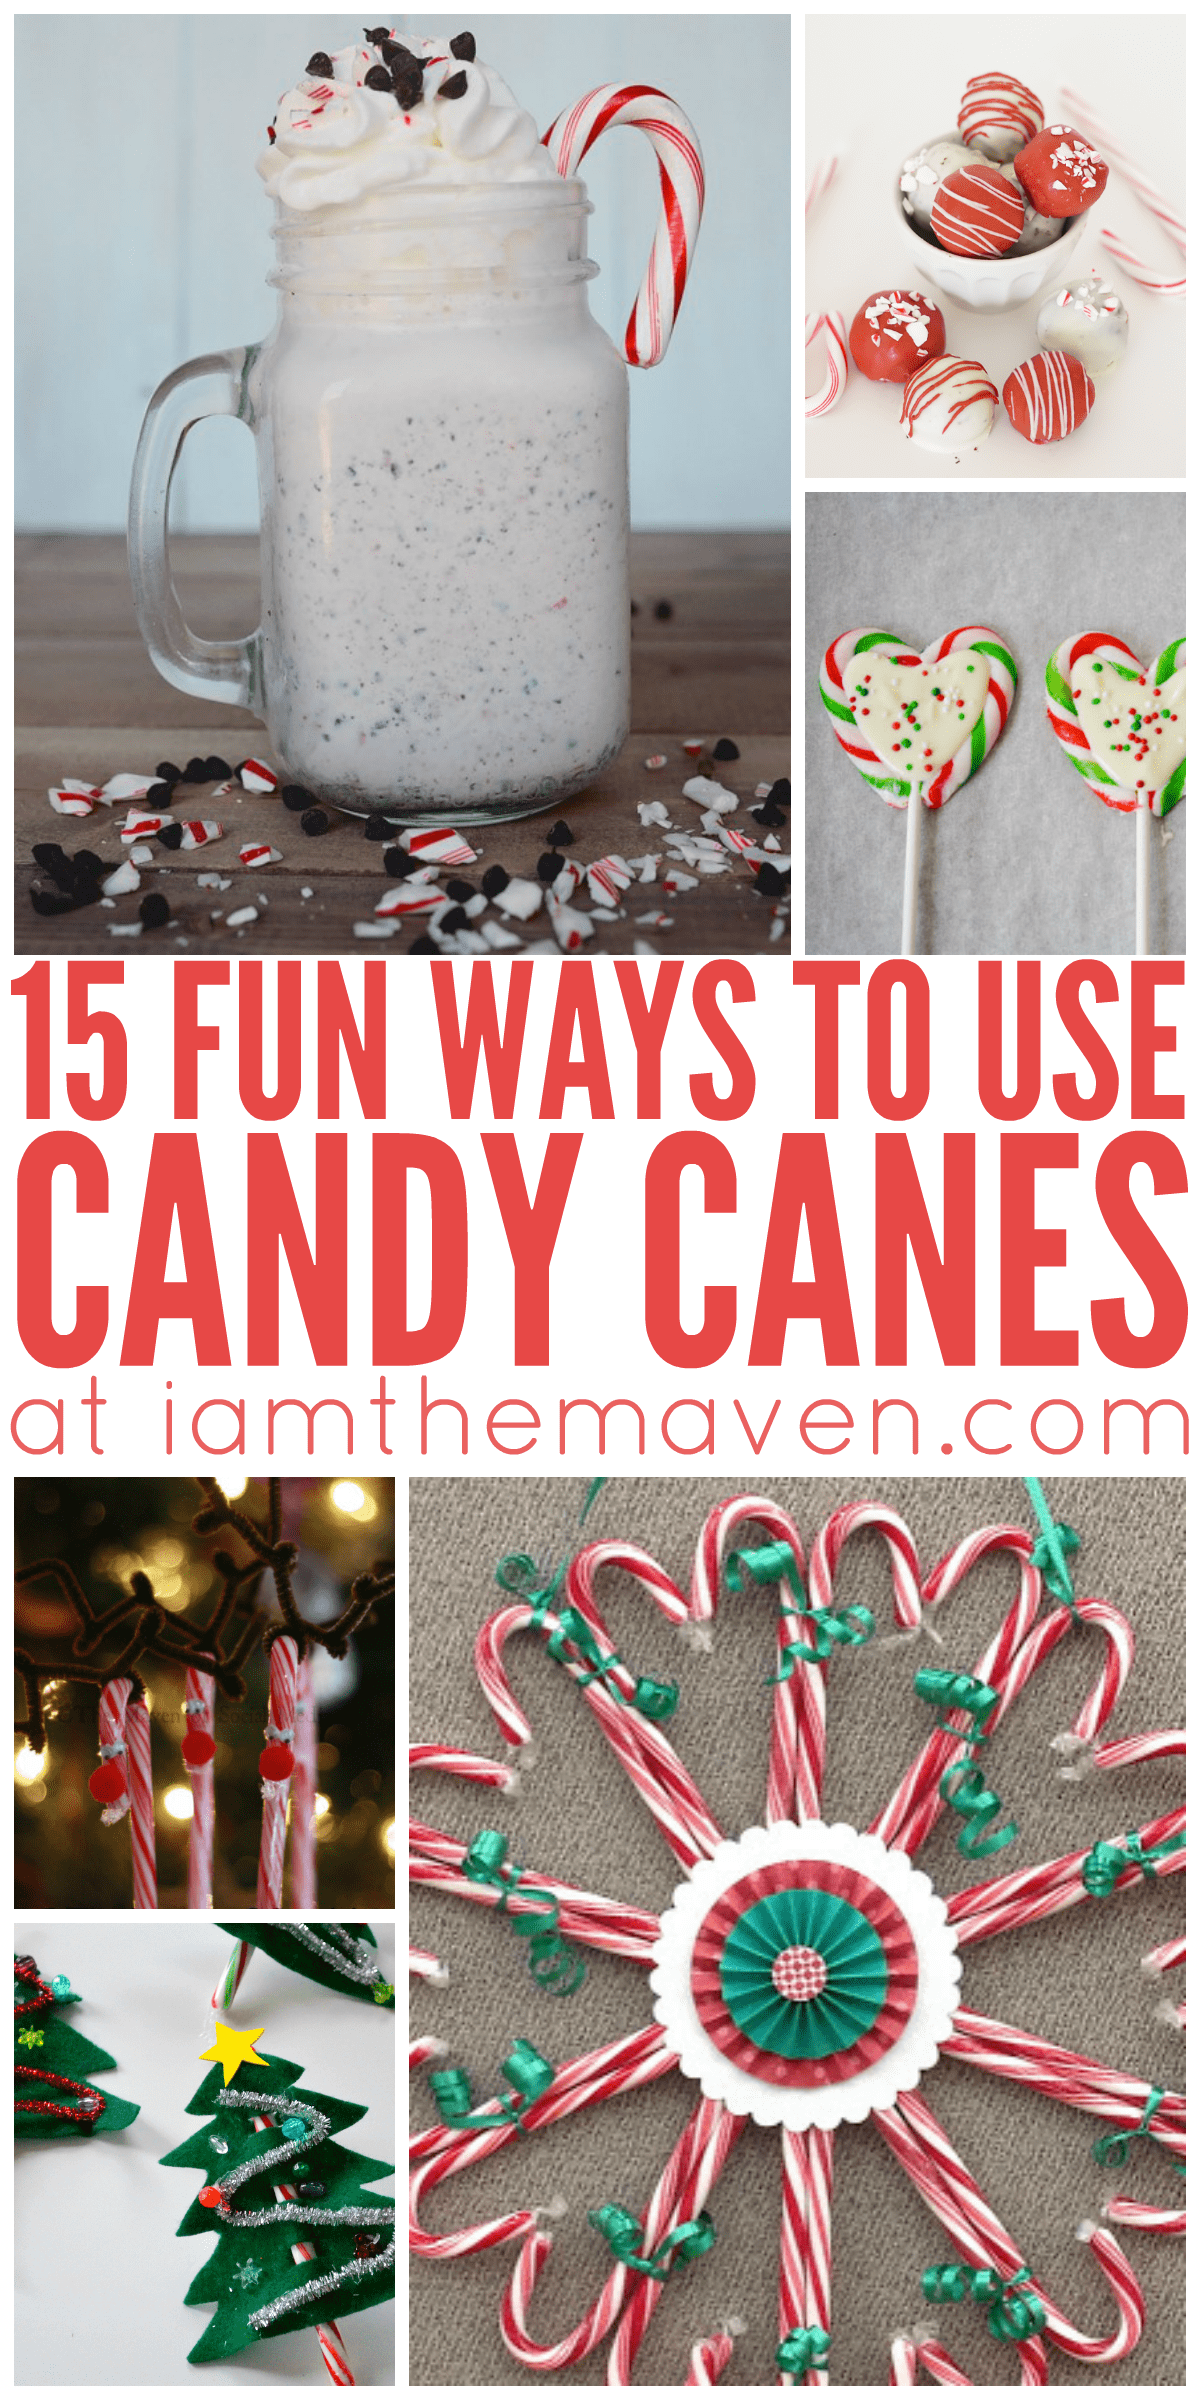 Who doesn't love candy canes! Here are 15 ways to use candy canes!